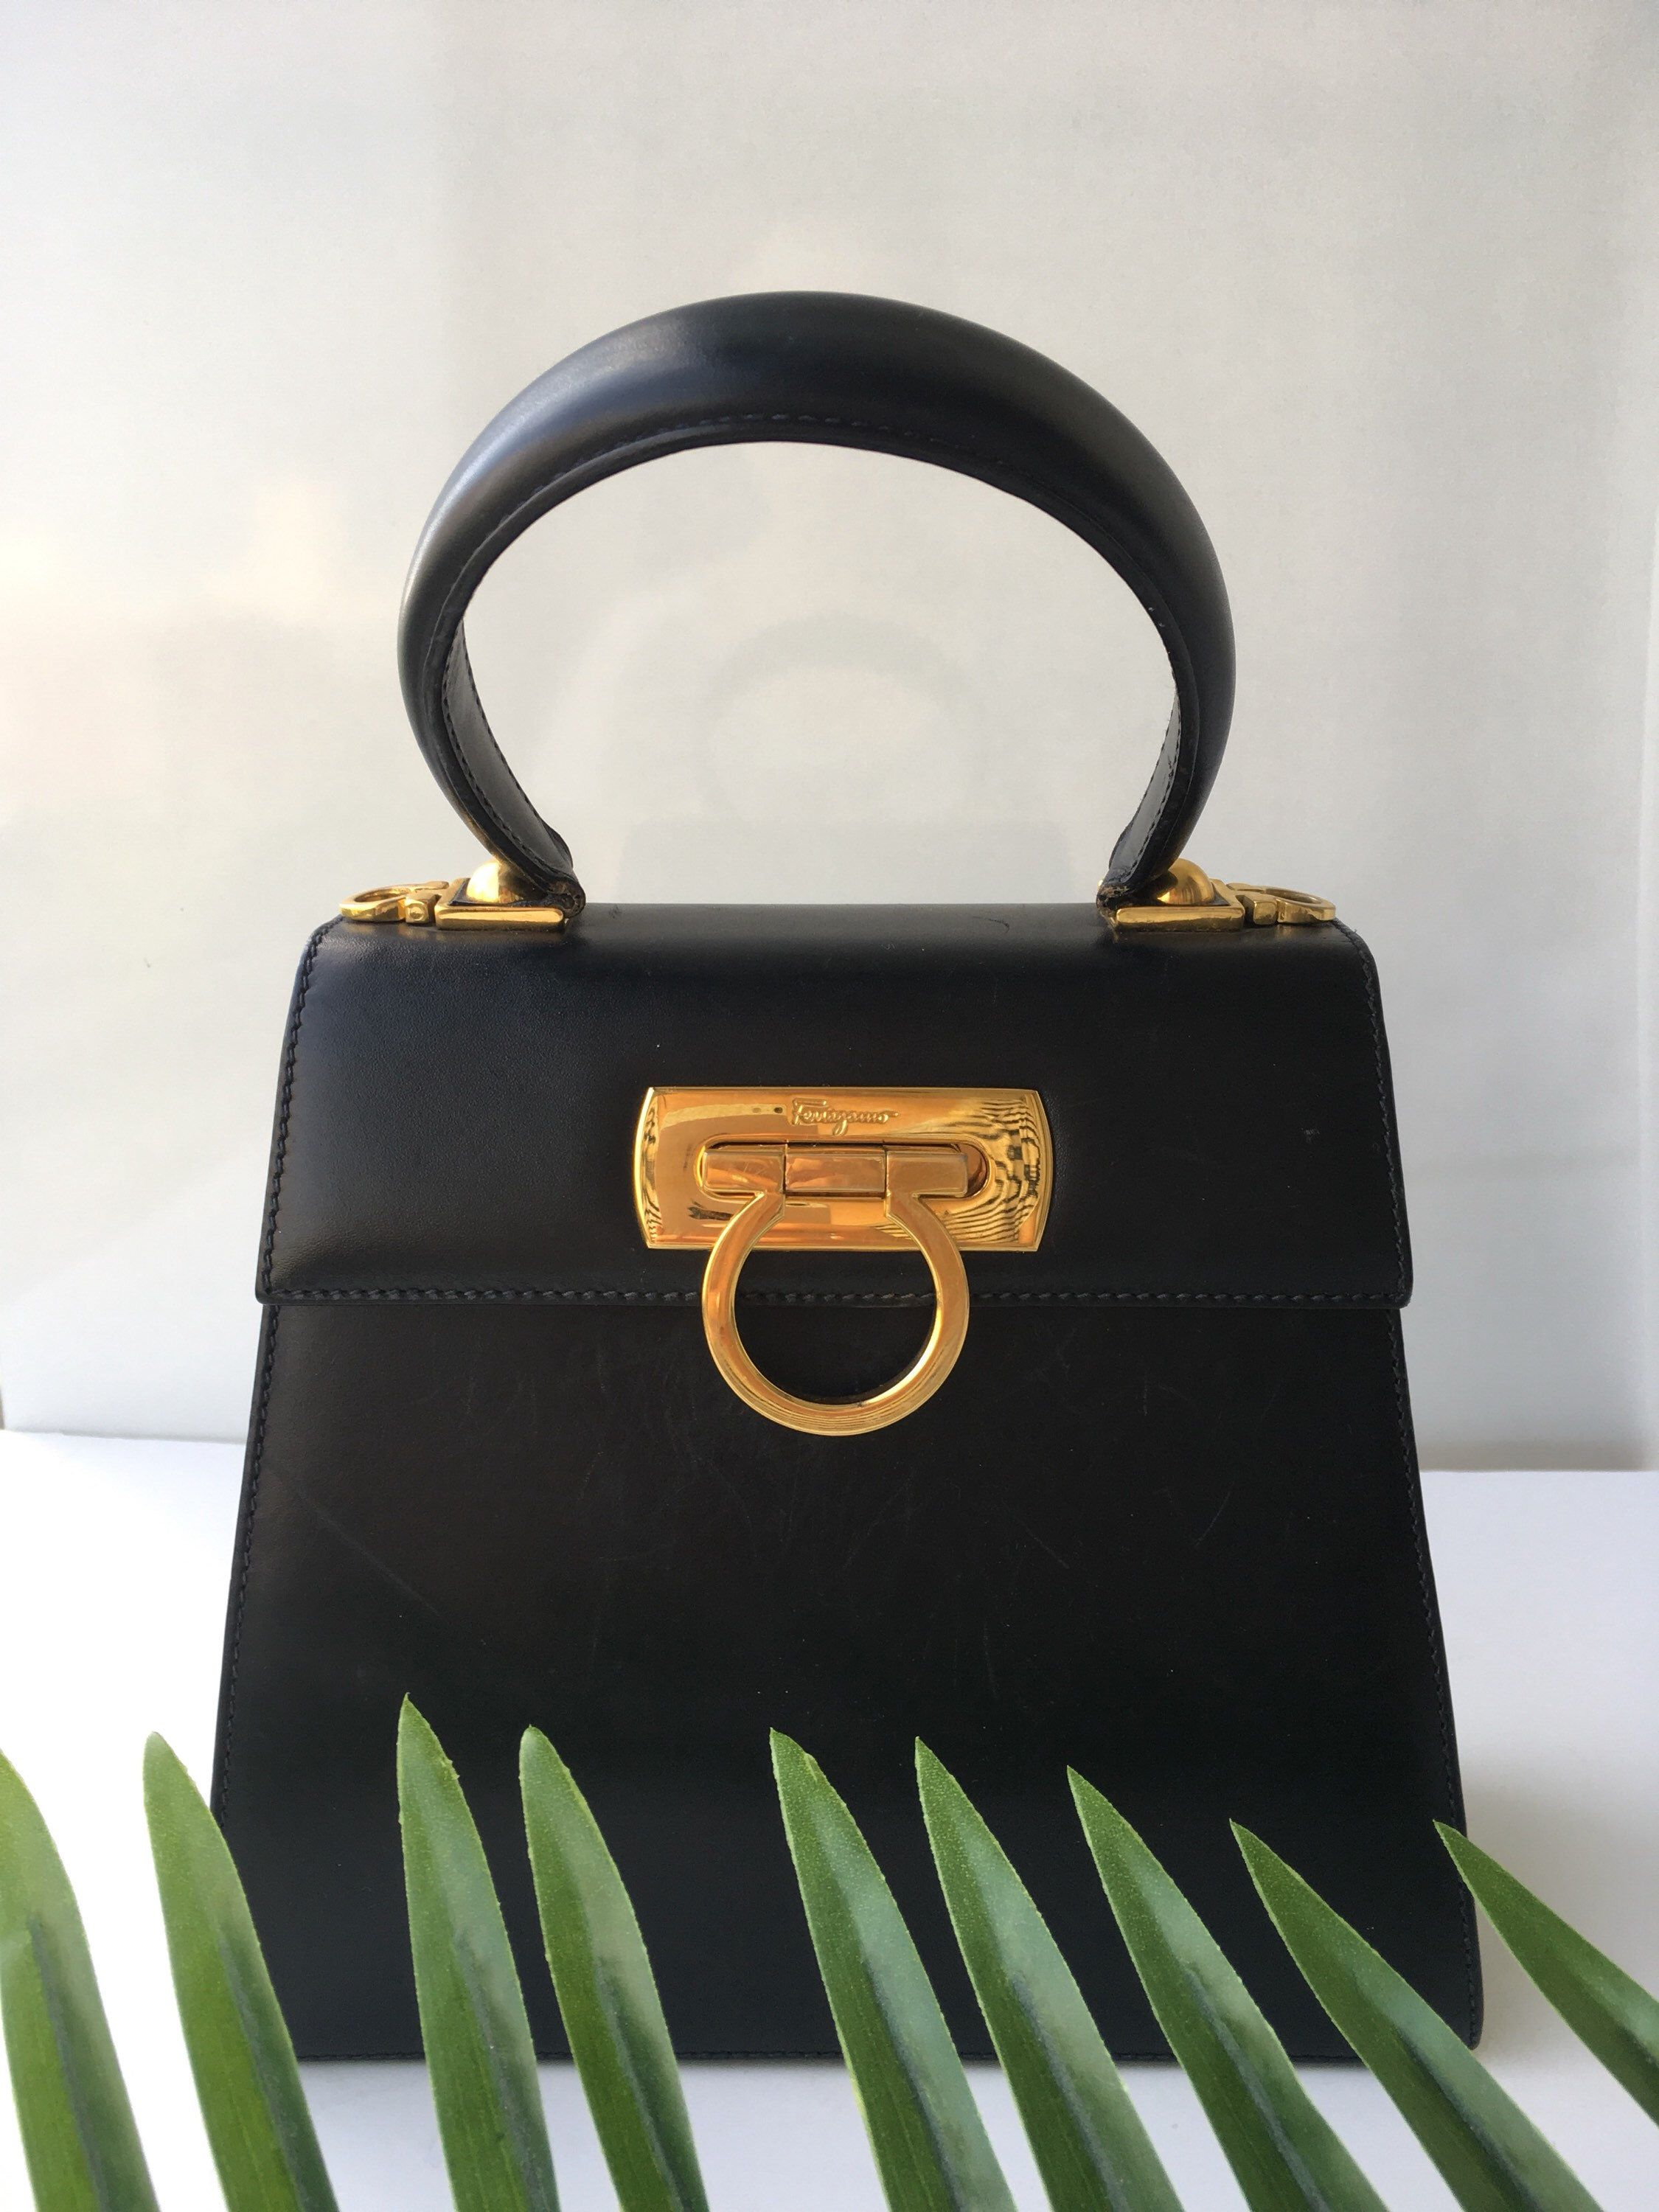 Excited to share this item from my  etsy shop  Salvatore Ferragamo Gancini  Mini Tote Kelly Style Authentic Vintage  authenticferragamo 04ec4e8d81811